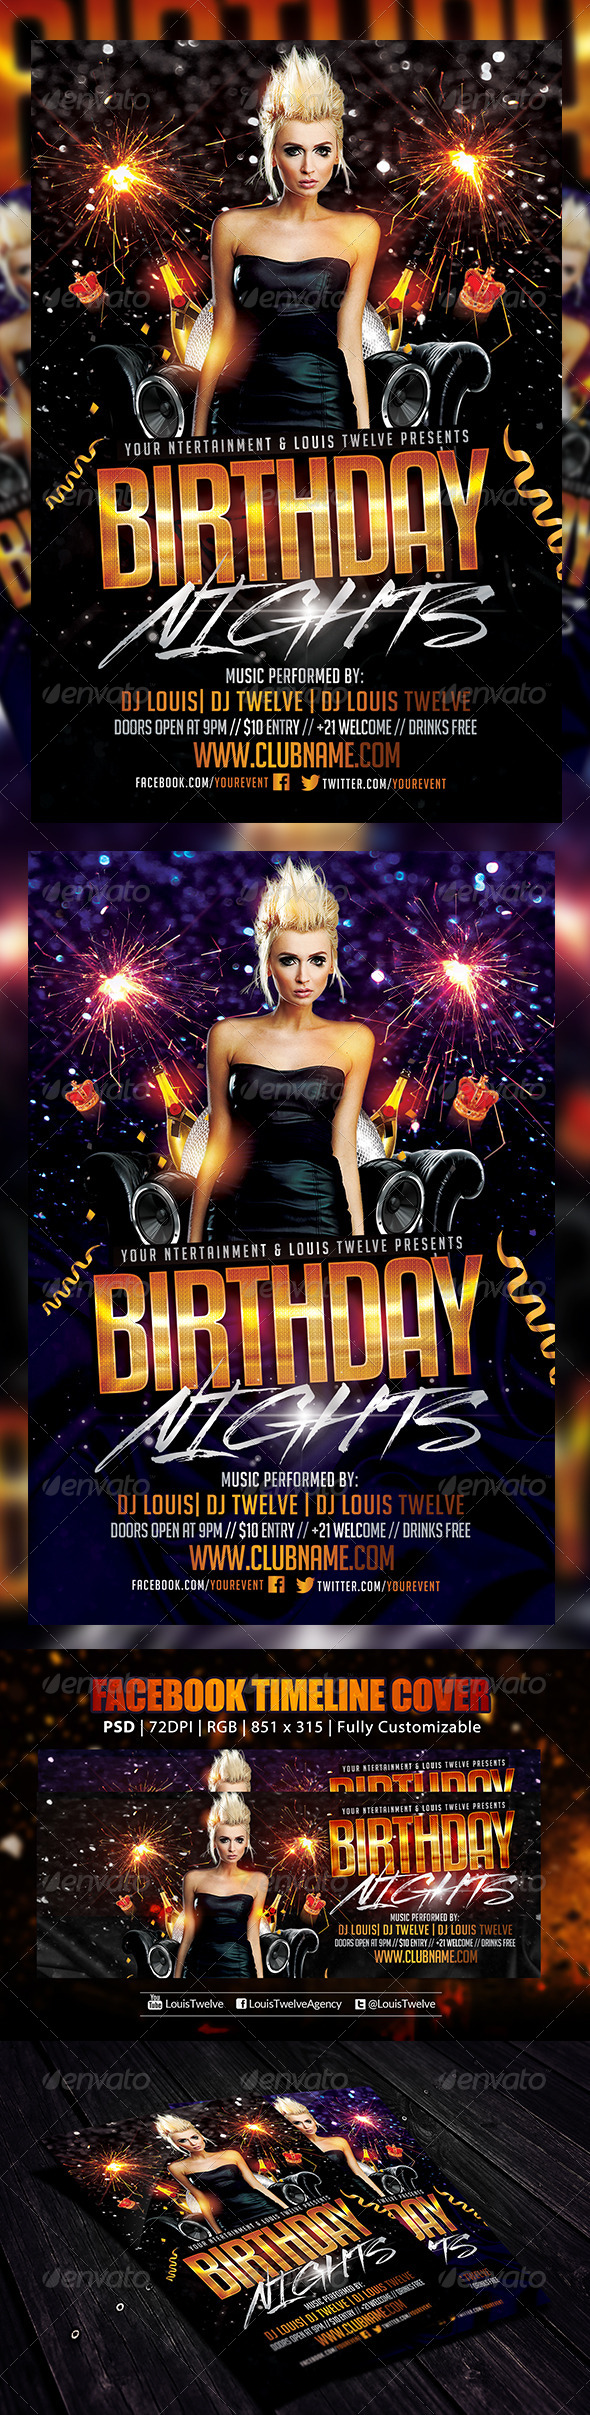 GraphicRiver Birthday Nights Flyer & FB Cover 6210932